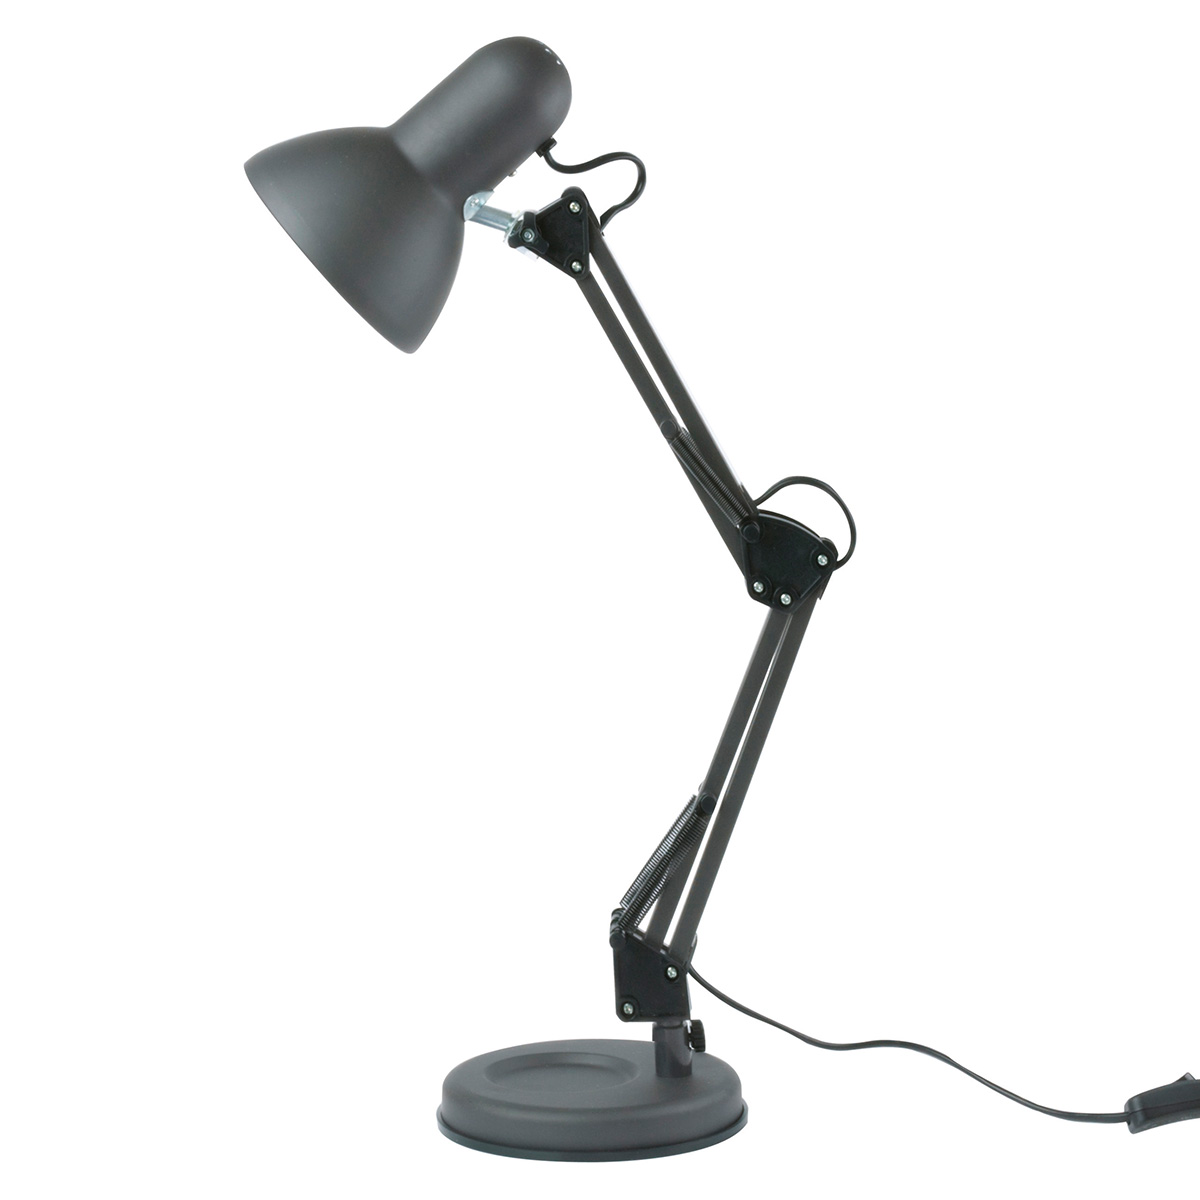 Leitmotiv bordlampe - Hobby - LM672 - Sort H 55 cm - Fineste arkitektlampe i metal - Bøjer i to led